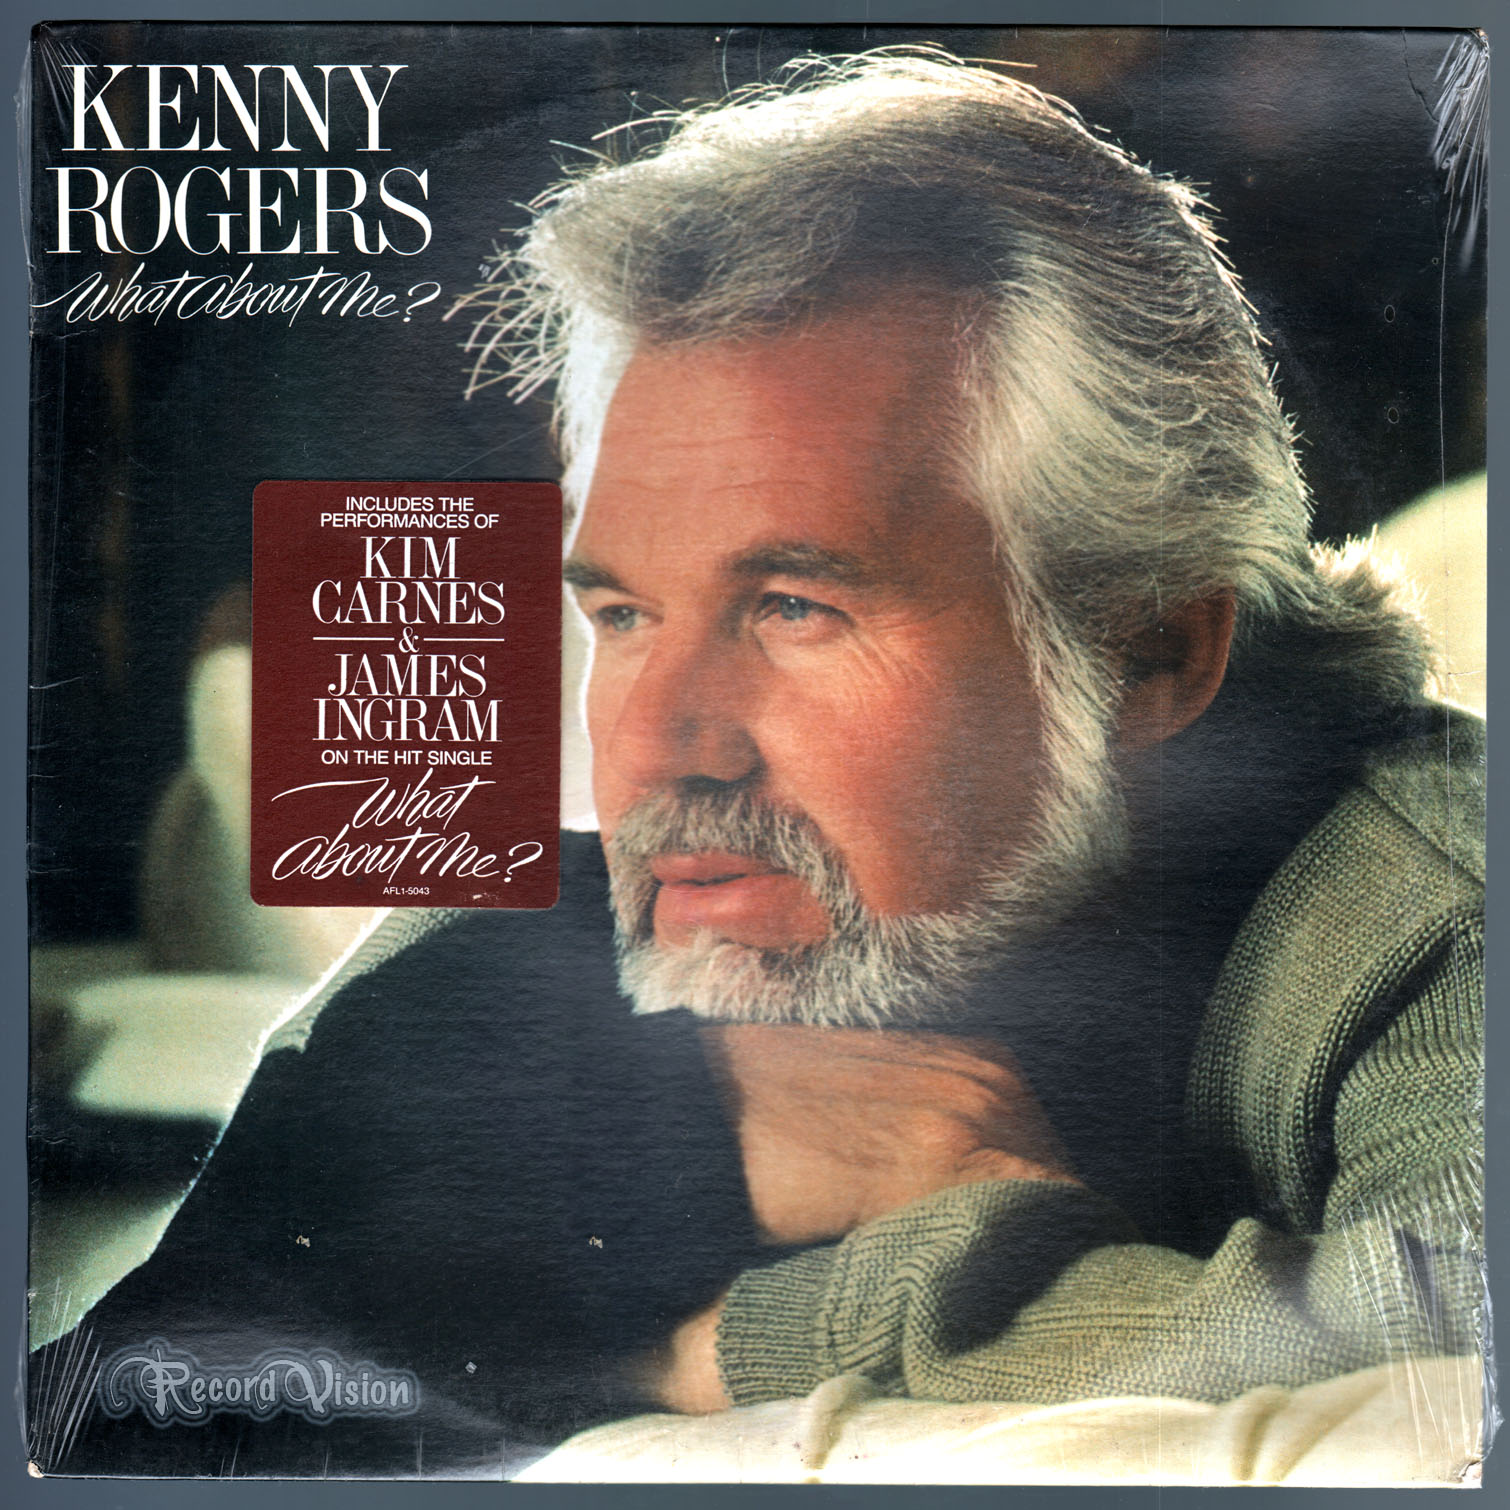 What about me? by Kenny Rogers, LP with recordvision - Ref:3070071114